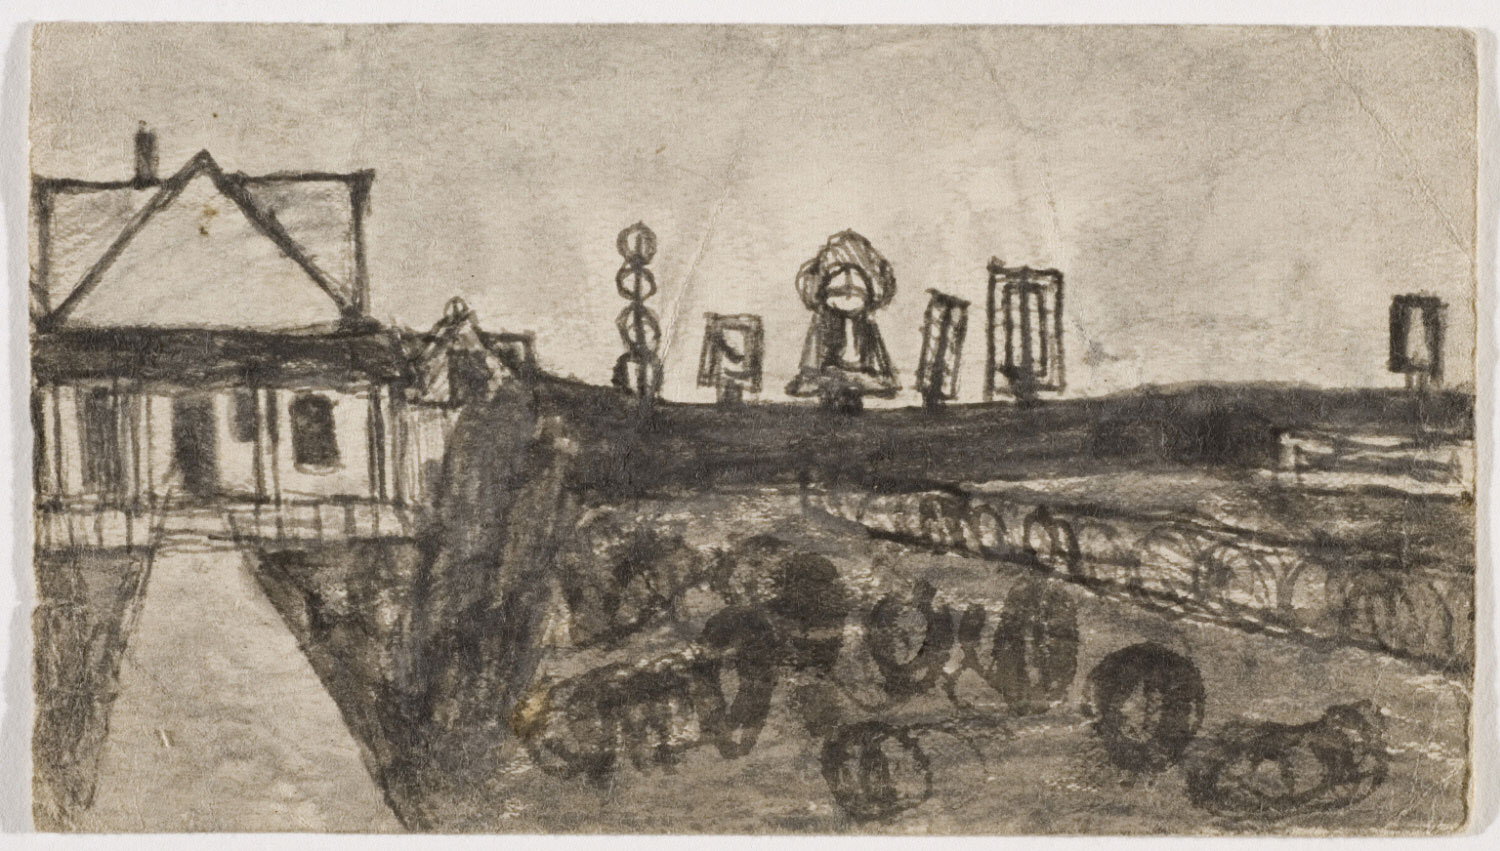 Untitled (Farmscape with house, totems, and